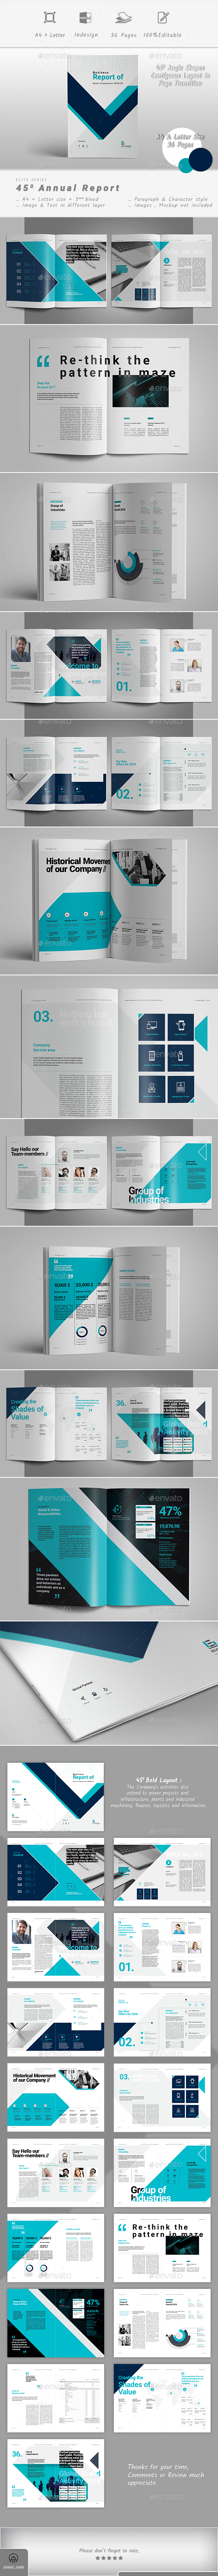 Annual Report Template InDesign INDD | Présentation | Pinterest ...